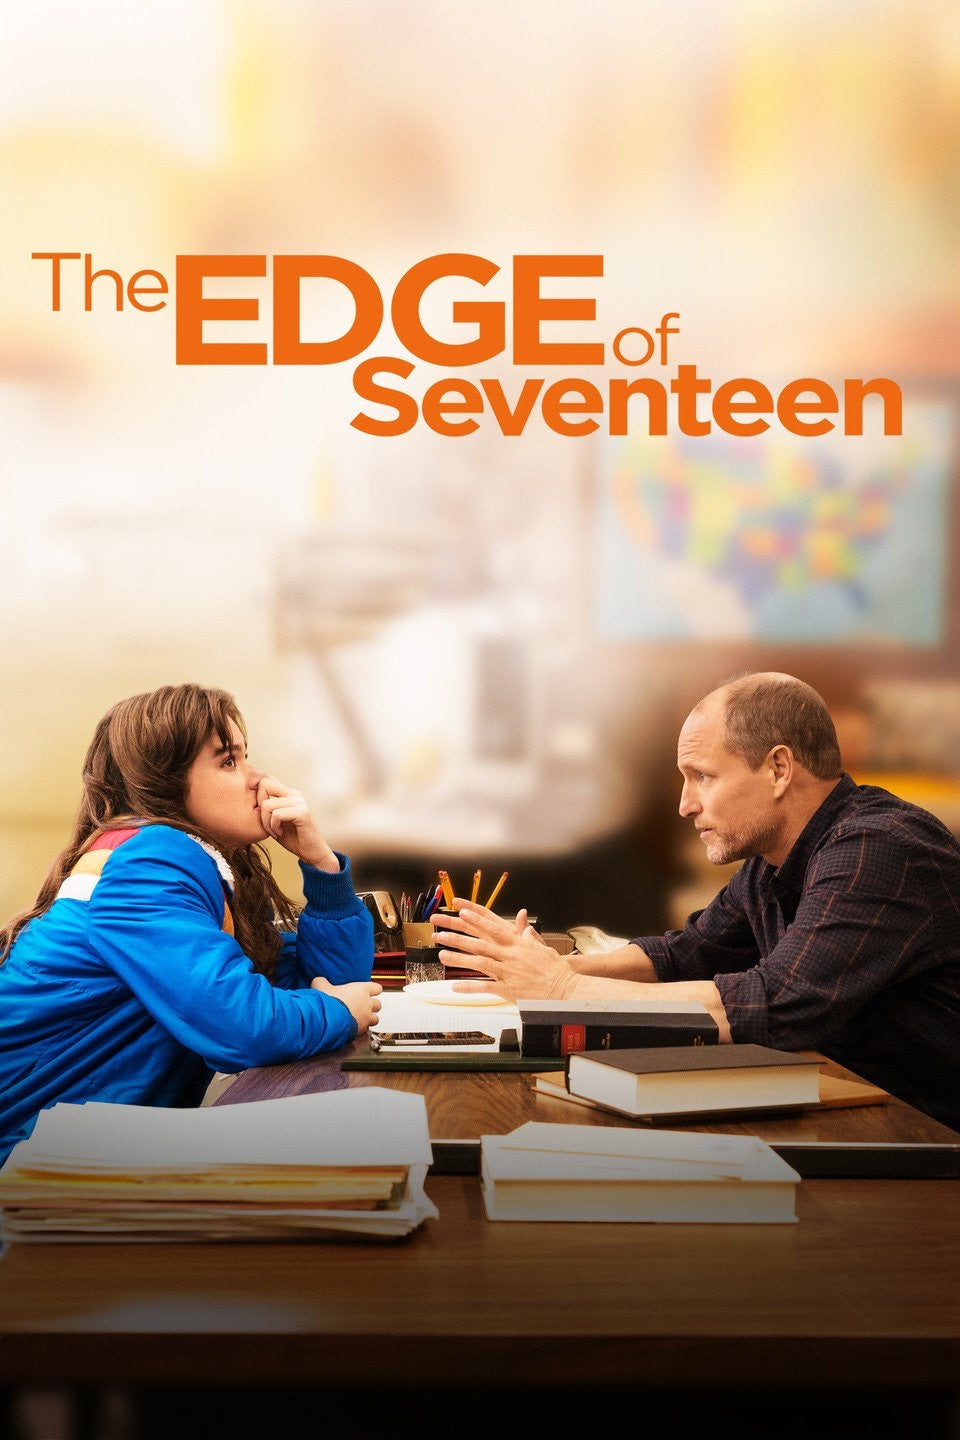 The Edge of Seventeen (2016) Vudu or Movies Anywhere HD redemption only